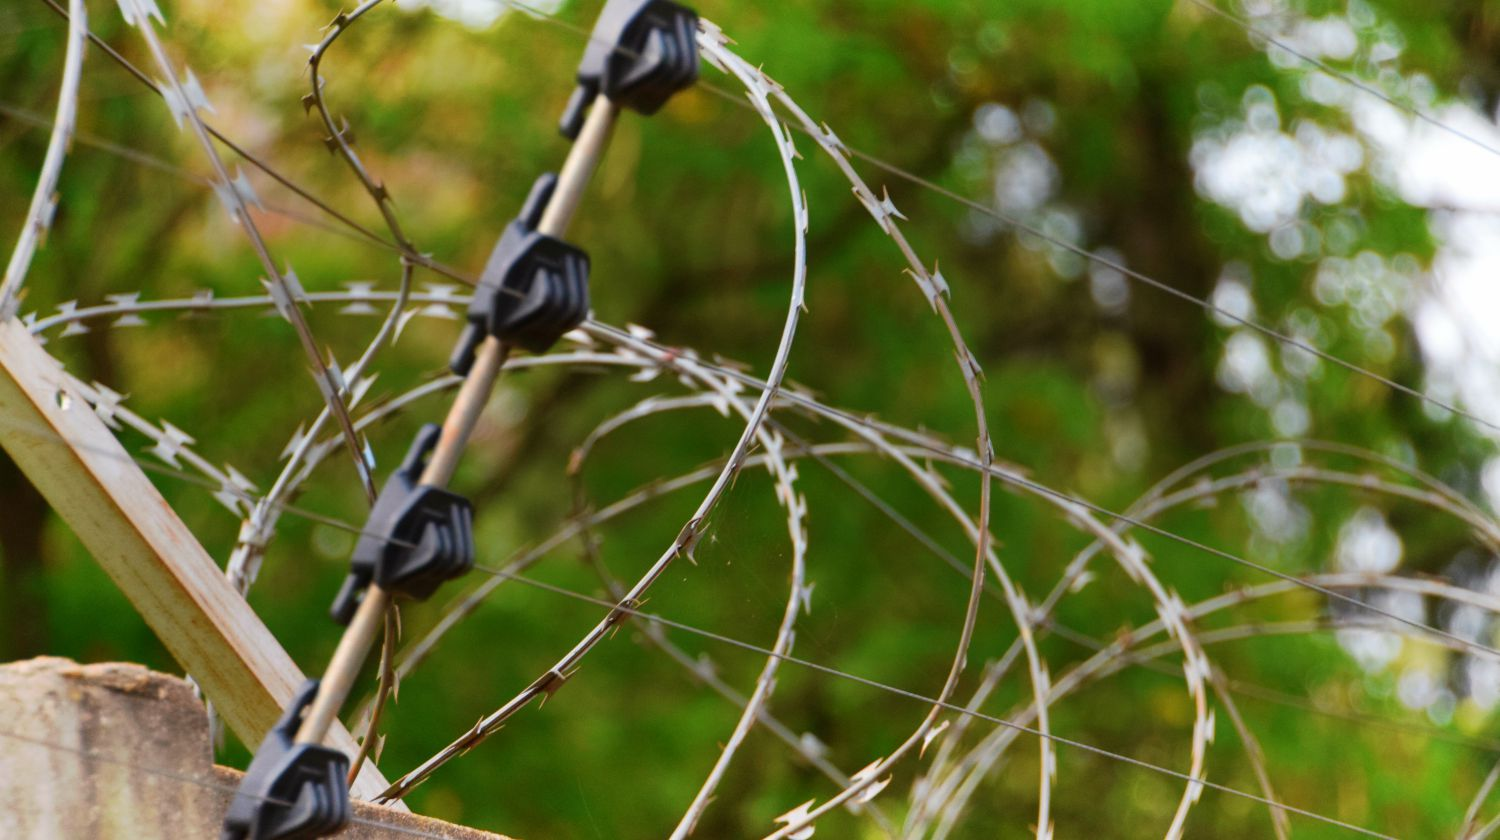 Barbed wire and electric fence wall security   Simple, Low-Tech, High Security Perimeter Alarm   Featured